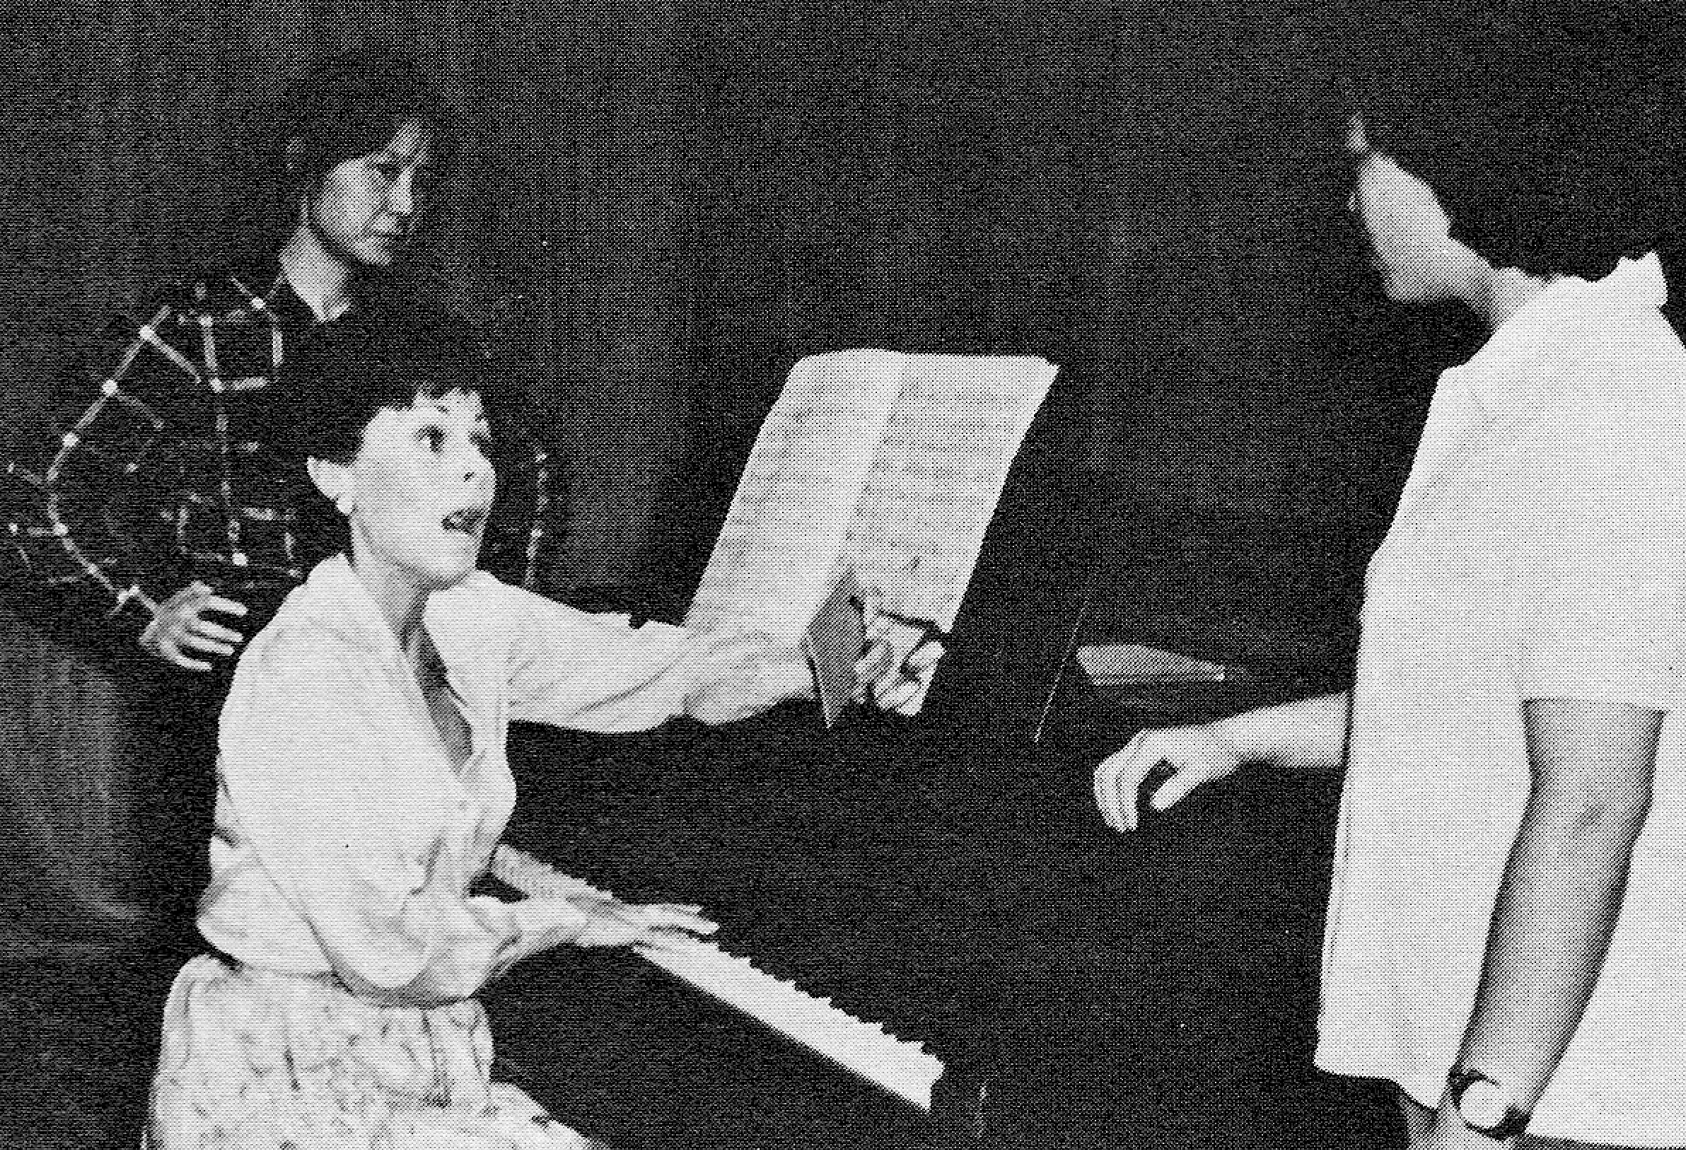 Roberta Peters, coloratura soprano of the Metropolitan Opera, visited China for ten days at the invitation of the Chinese Ministry of Culture in September 1980. Ms. Peters gave public performances in Beijing, Shanghai, and Guangzhou and also conducted master classes at the conservatories, where she found vocal students performing difficult works such as those of Puccini, Bellini, and Handel. Ms. Peters was moved by the determination of the students to make up for time lost during the Cultural Revolution.